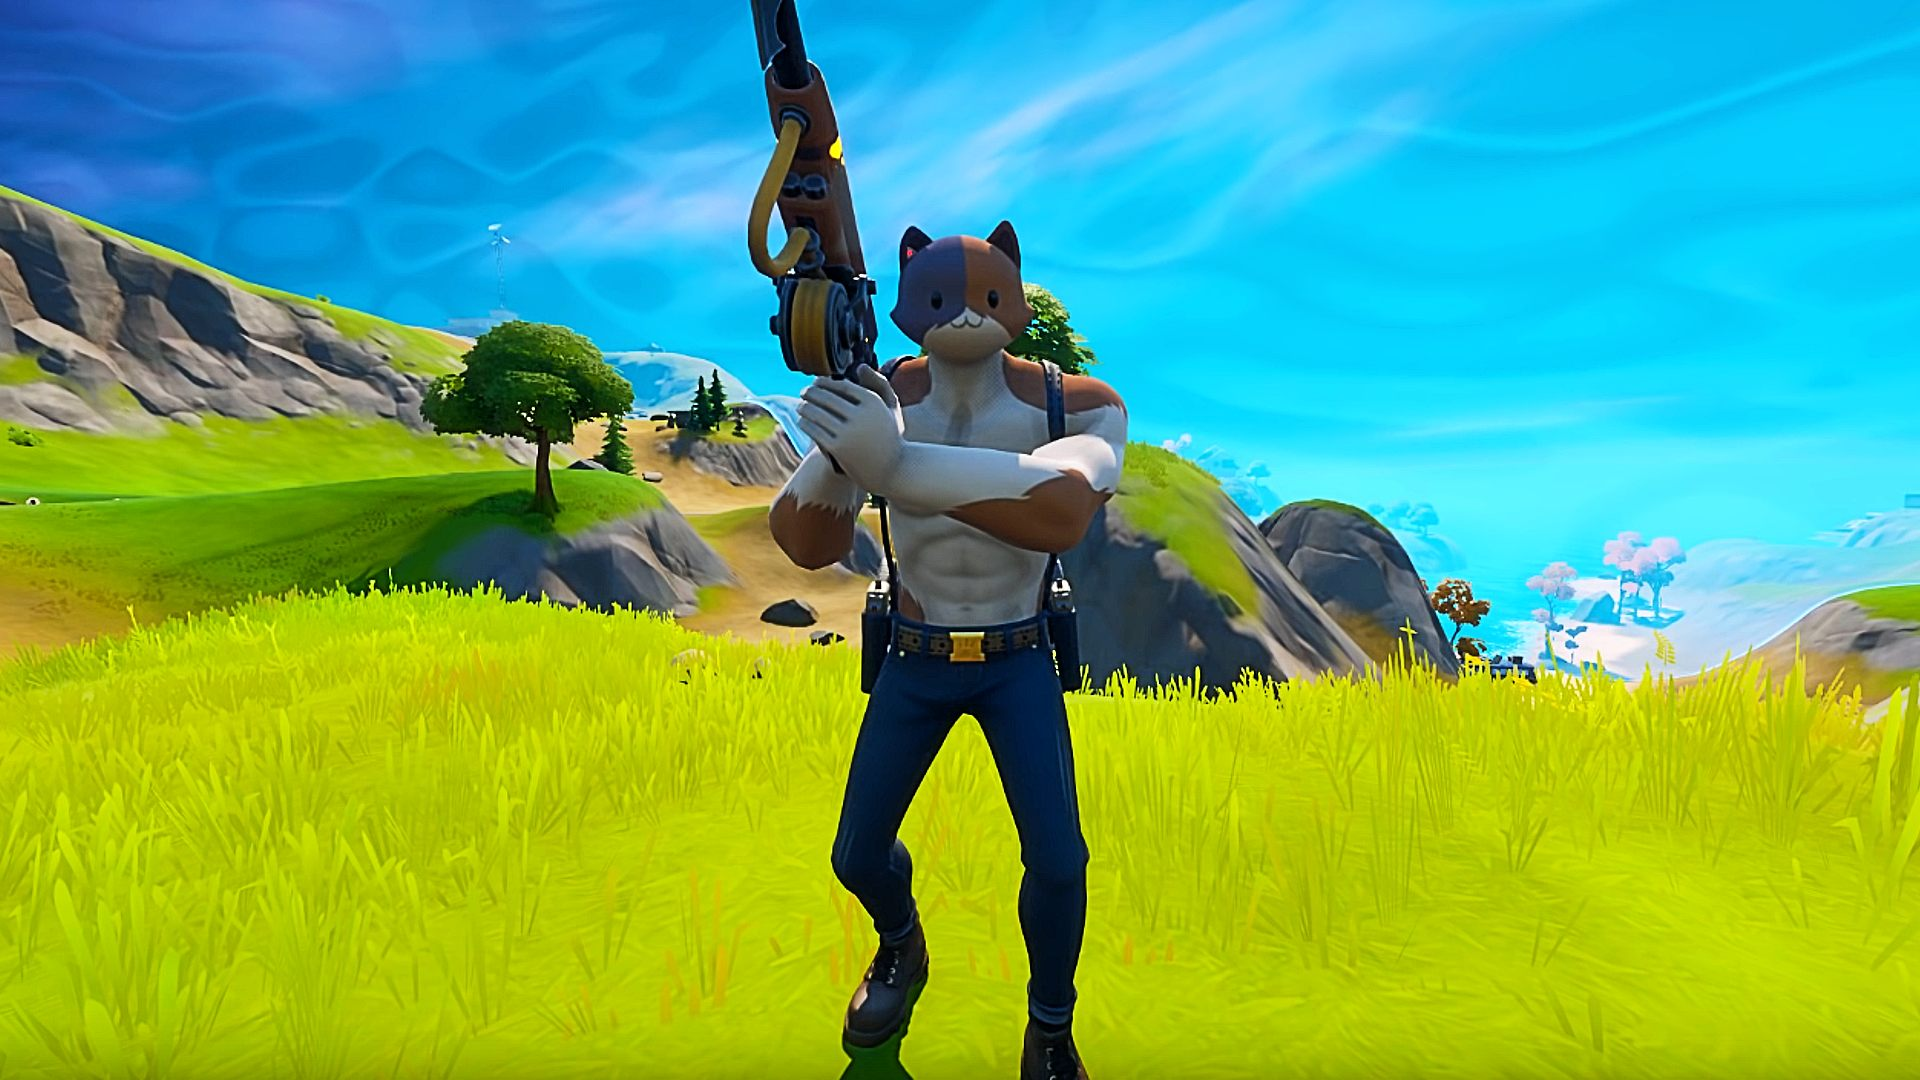 Fortnite Deliver Fish To Shadow Or Ghost Locations For The Final Meowscles Challenge Pcgamesn